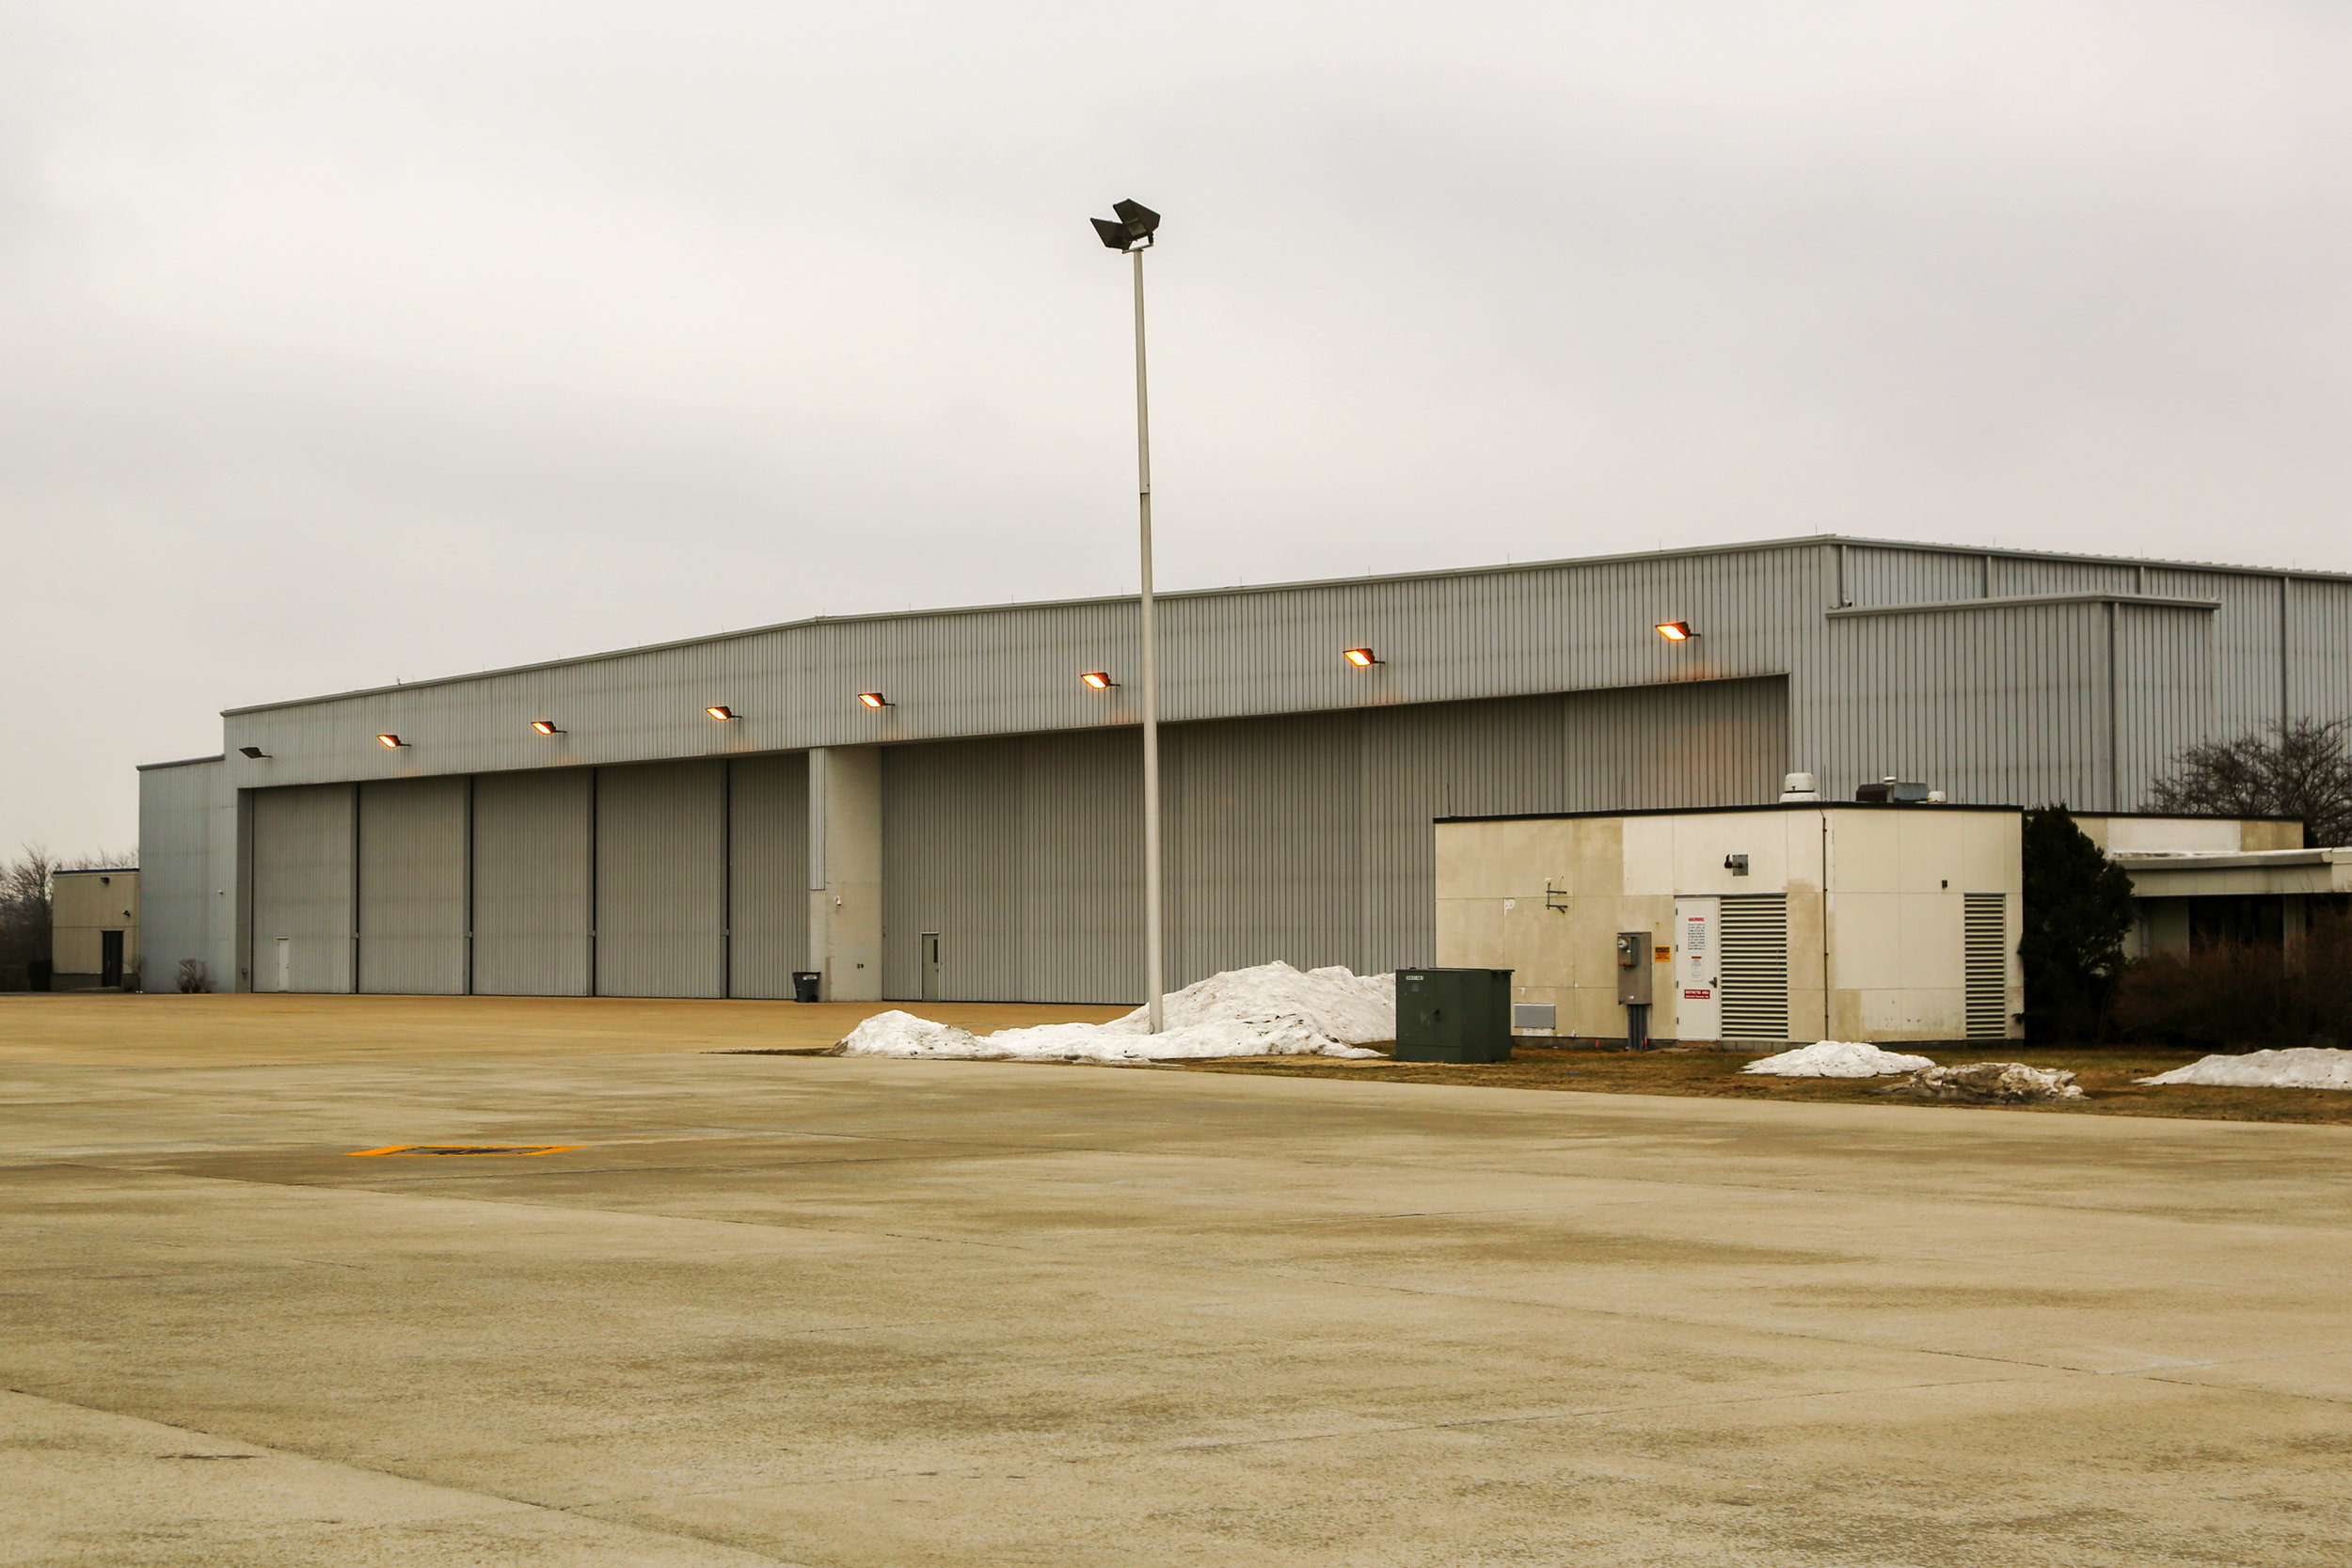 WAUKEGAN NATIONAL AIRPORT HANGAR AND CREW QUARTERS - 15,000-SF / Design-BuildWaukegan, Illinois